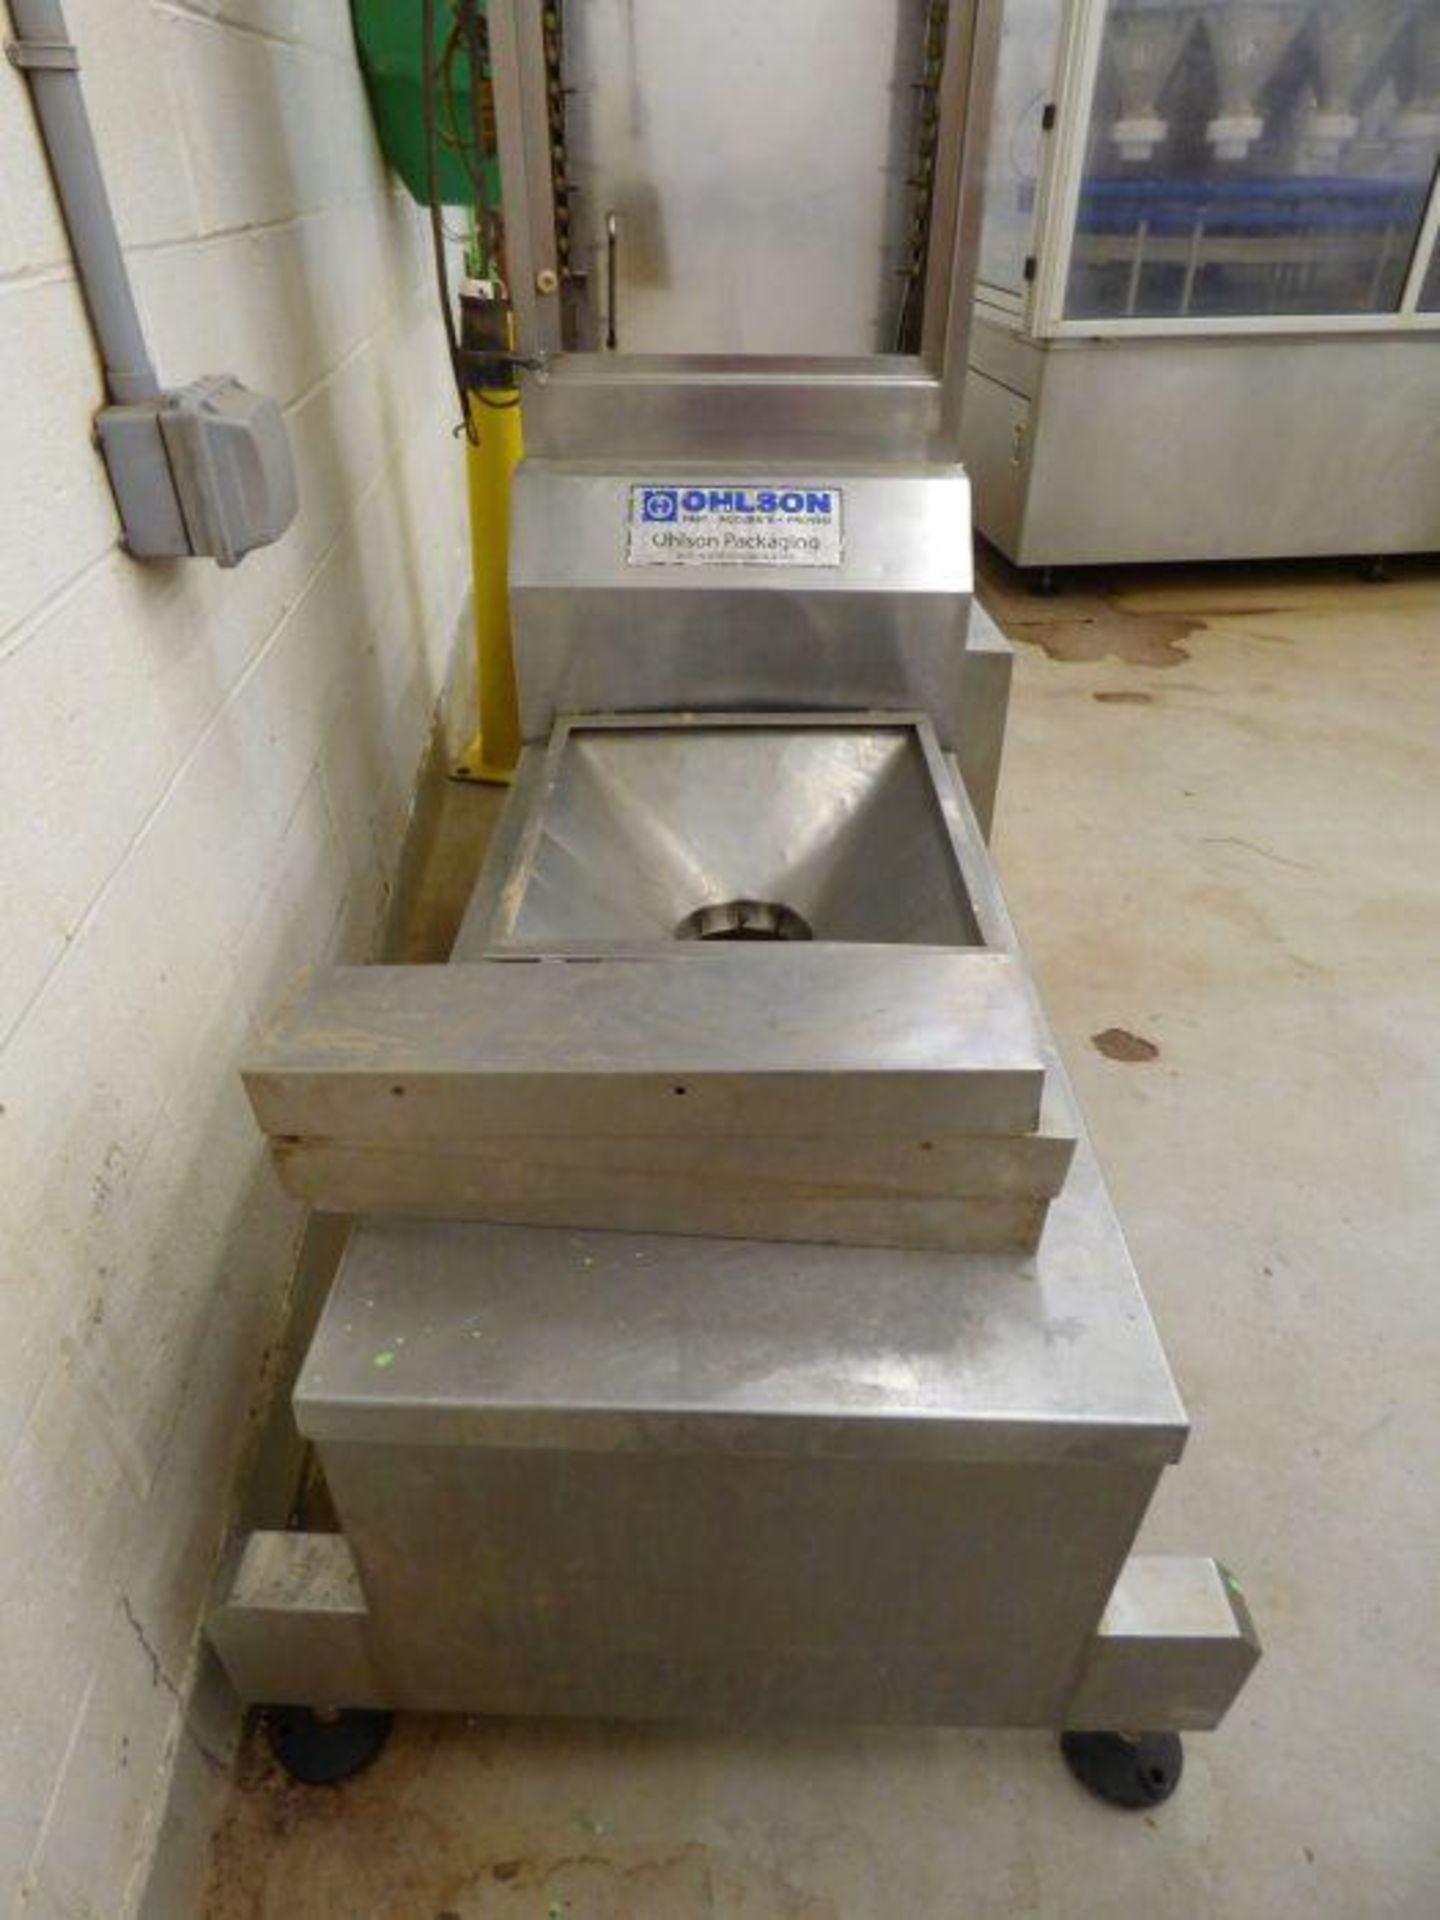 Ohlson Stainless Steel Bucket Elevator - Image 2 of 4